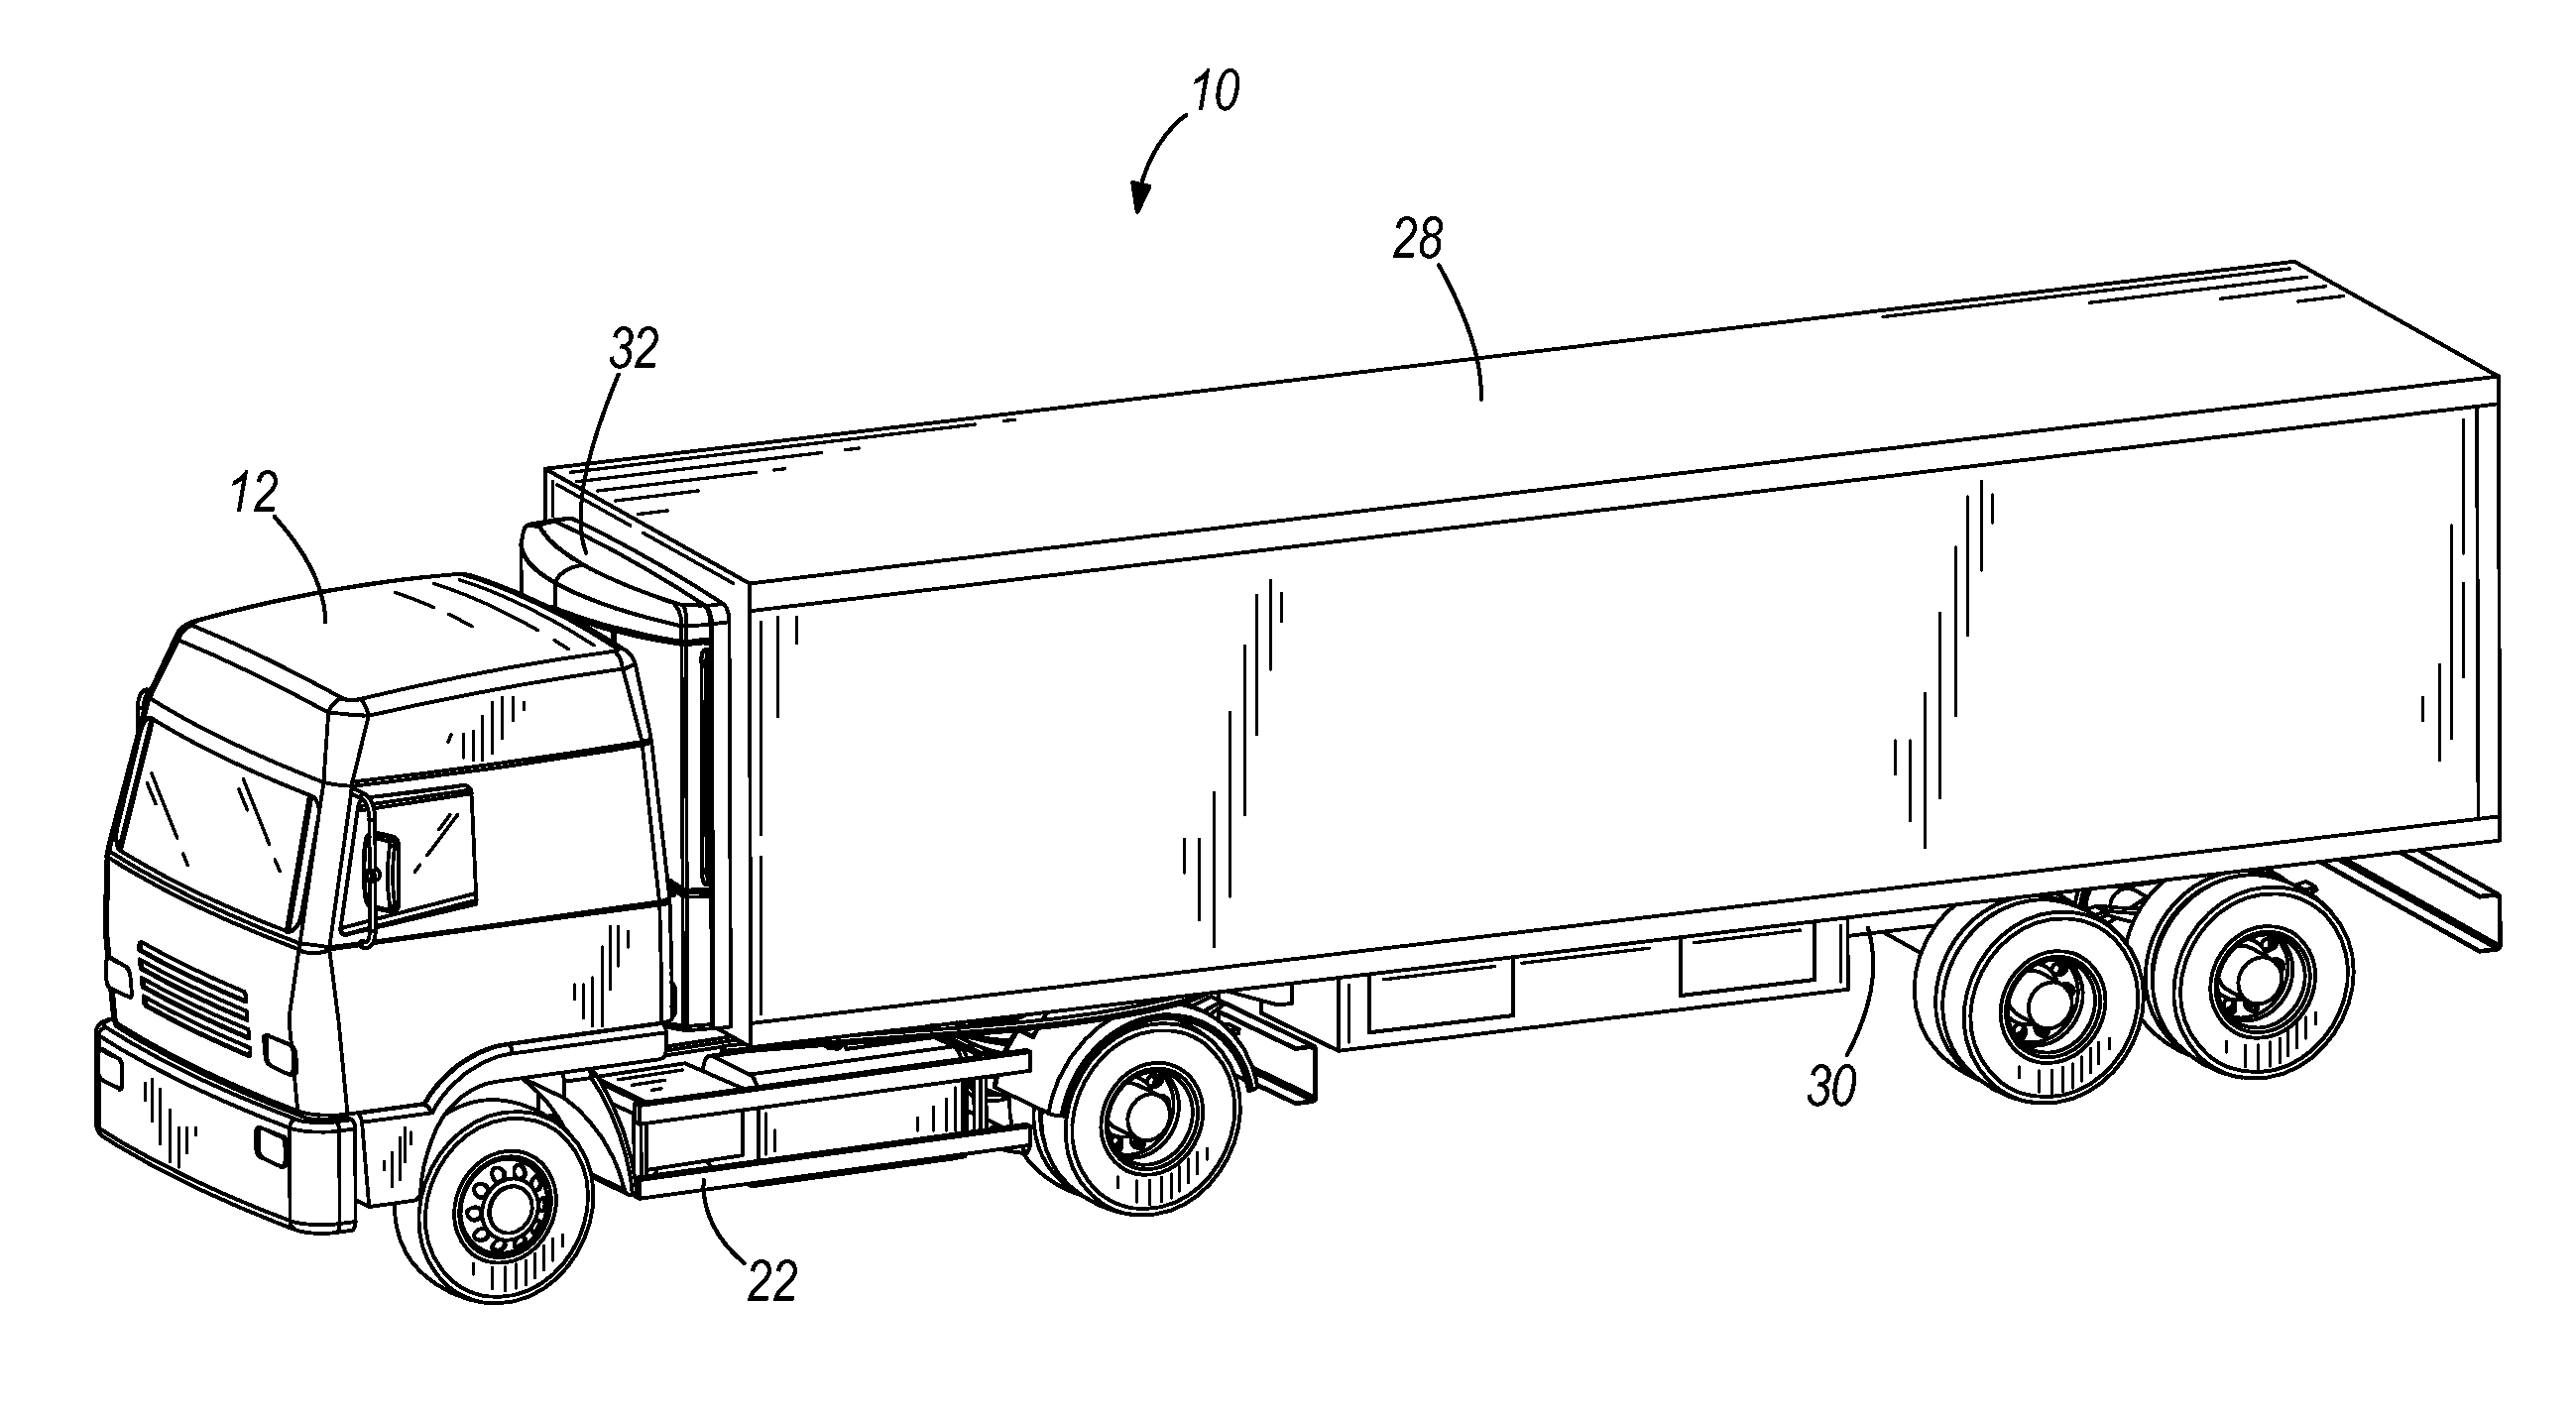 Daily Truck Inspection Forms Q68zjWZmwN7BuMRVgNgQCgFMJ 7C977EYItorawB8Vy6g additionally Detroit Diesel Vgtegr in addition Semi Truck Axle Diagrams further Watch further A Truck Engine. on semi truck inspection diagram